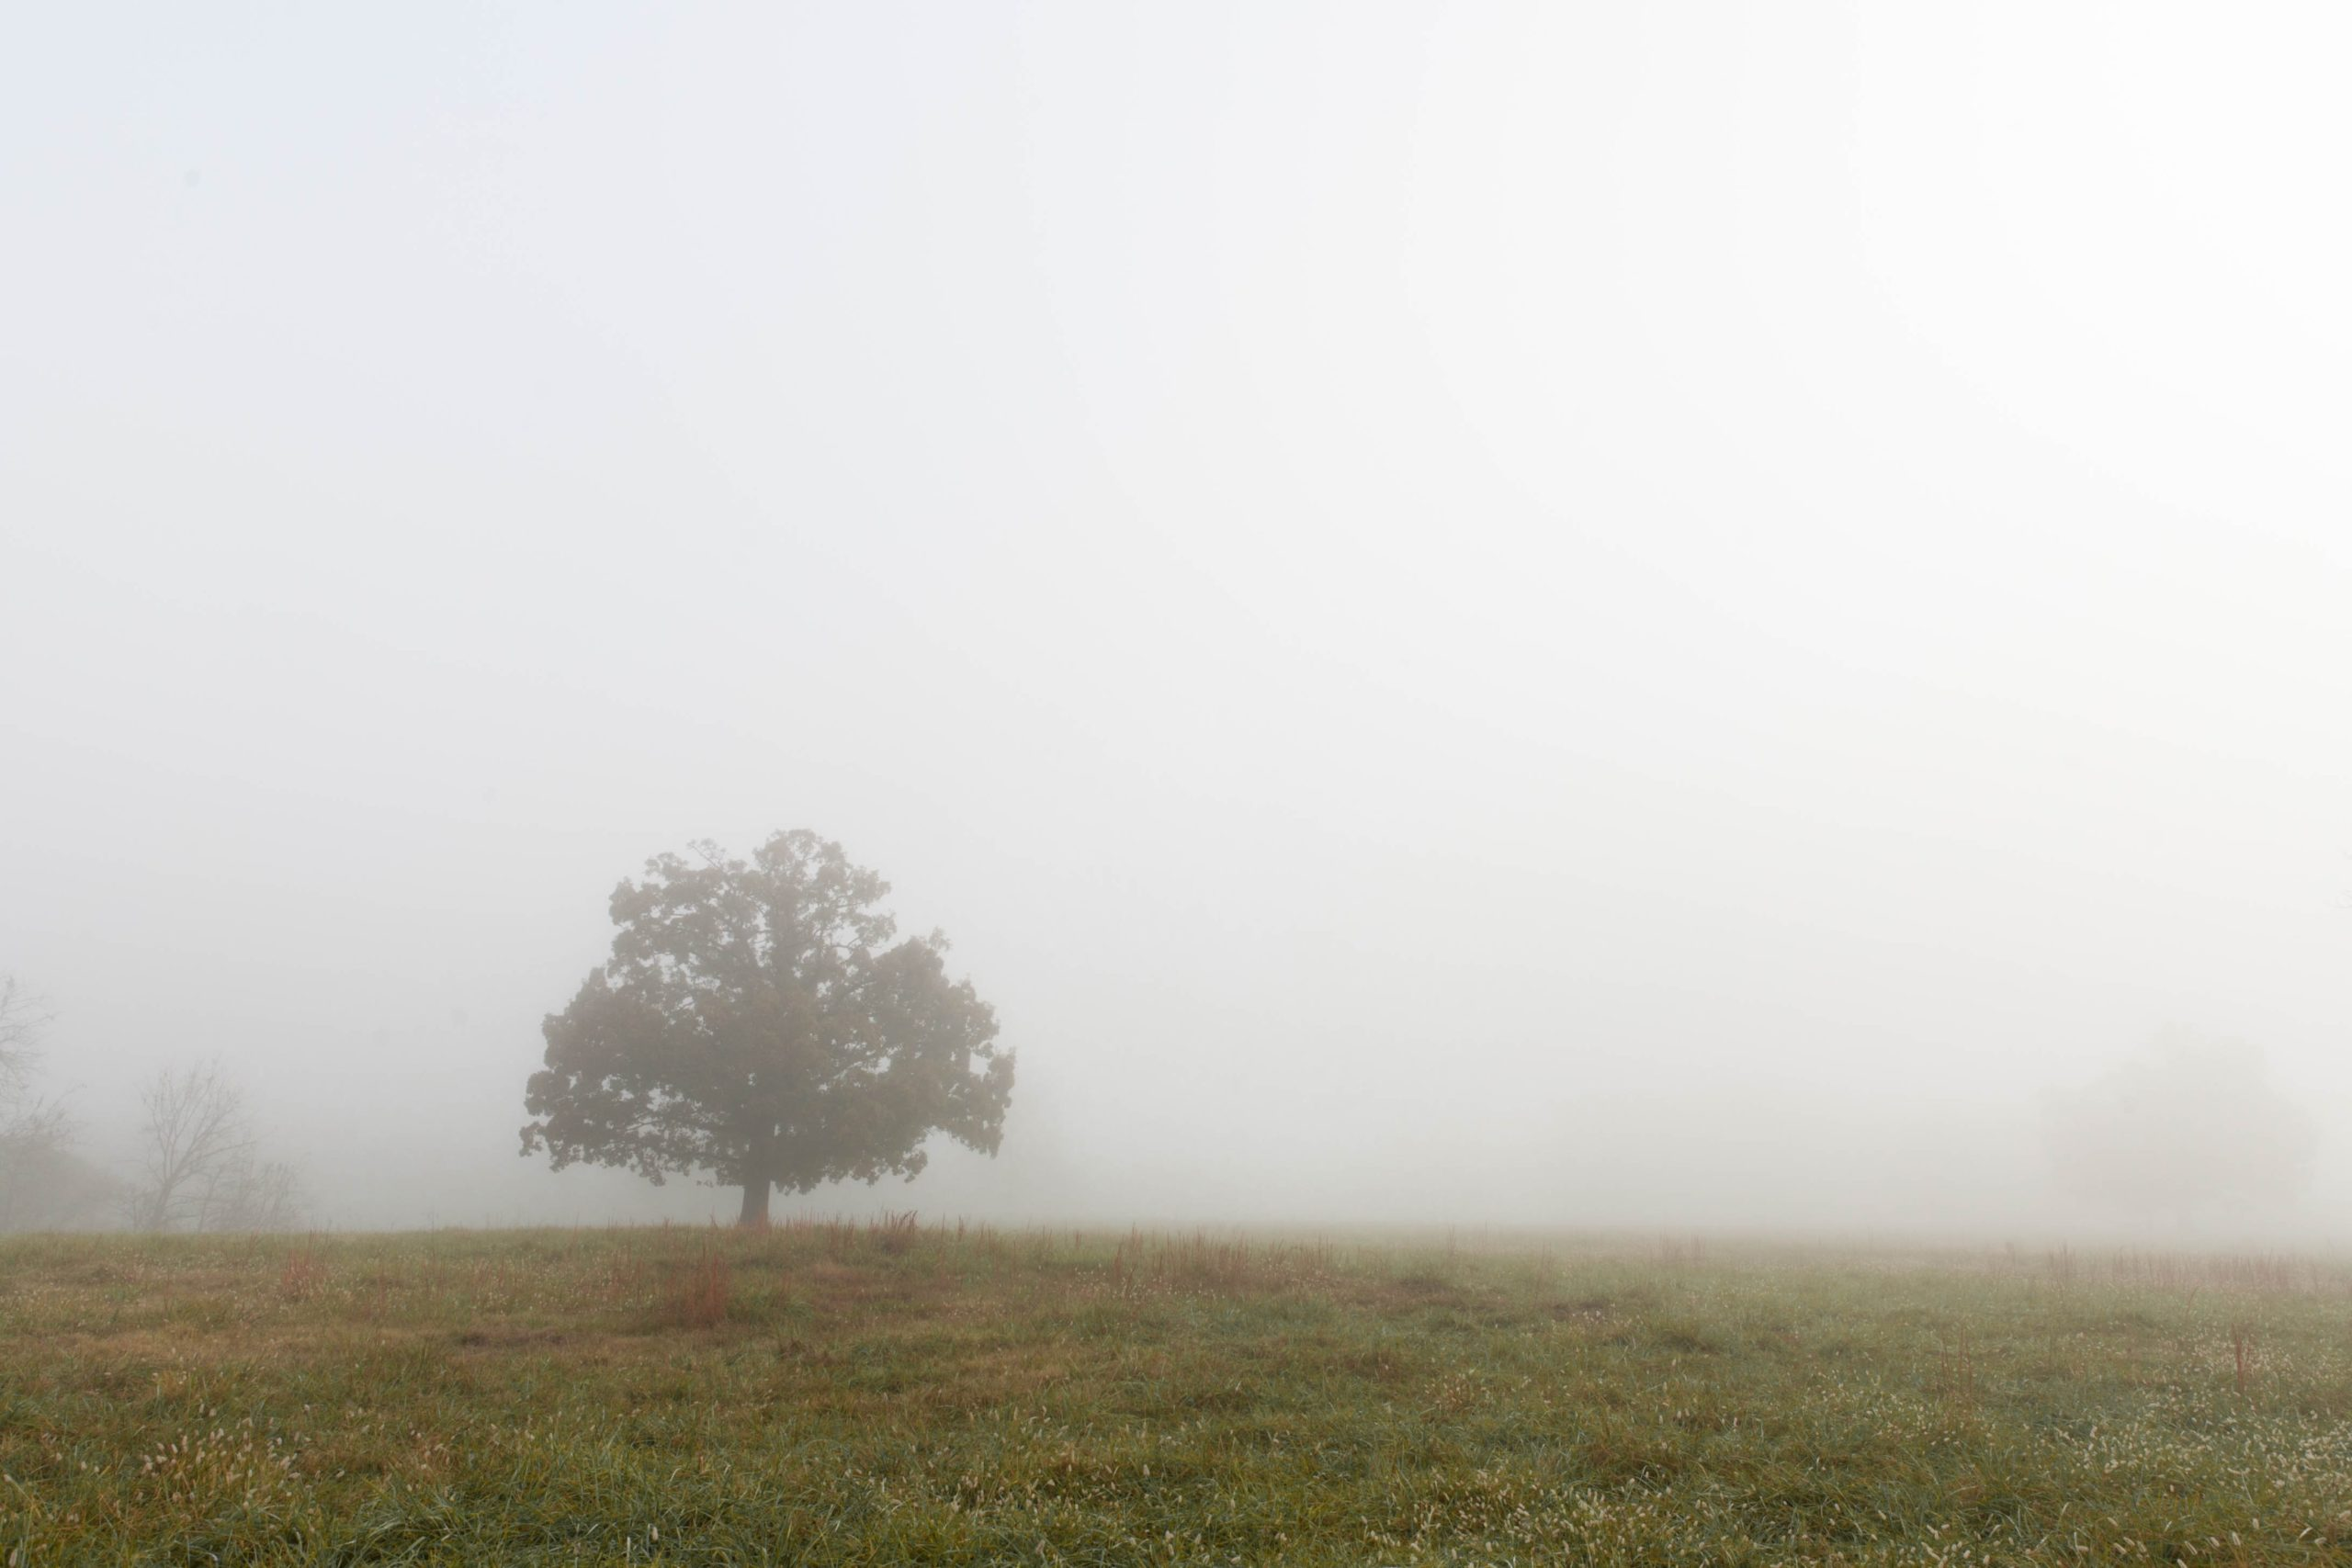 tree in foggy field